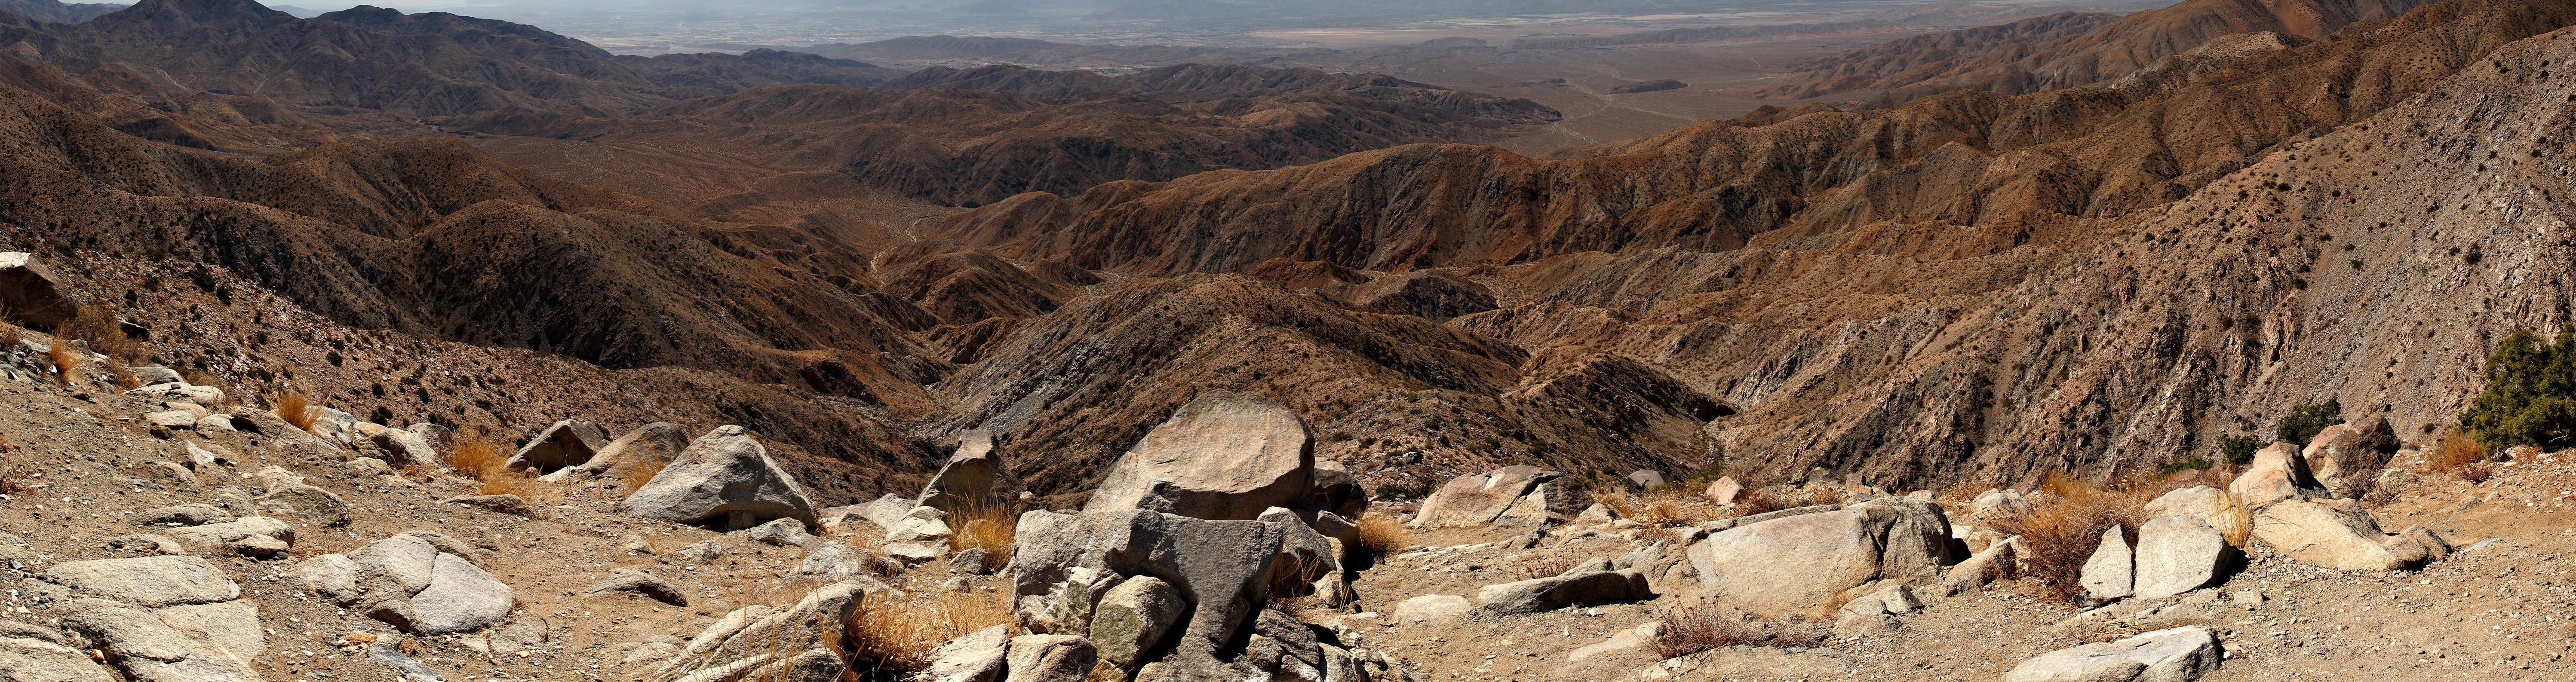 Joshua_tree_keys_view_pano_more_vertical-1.jpg